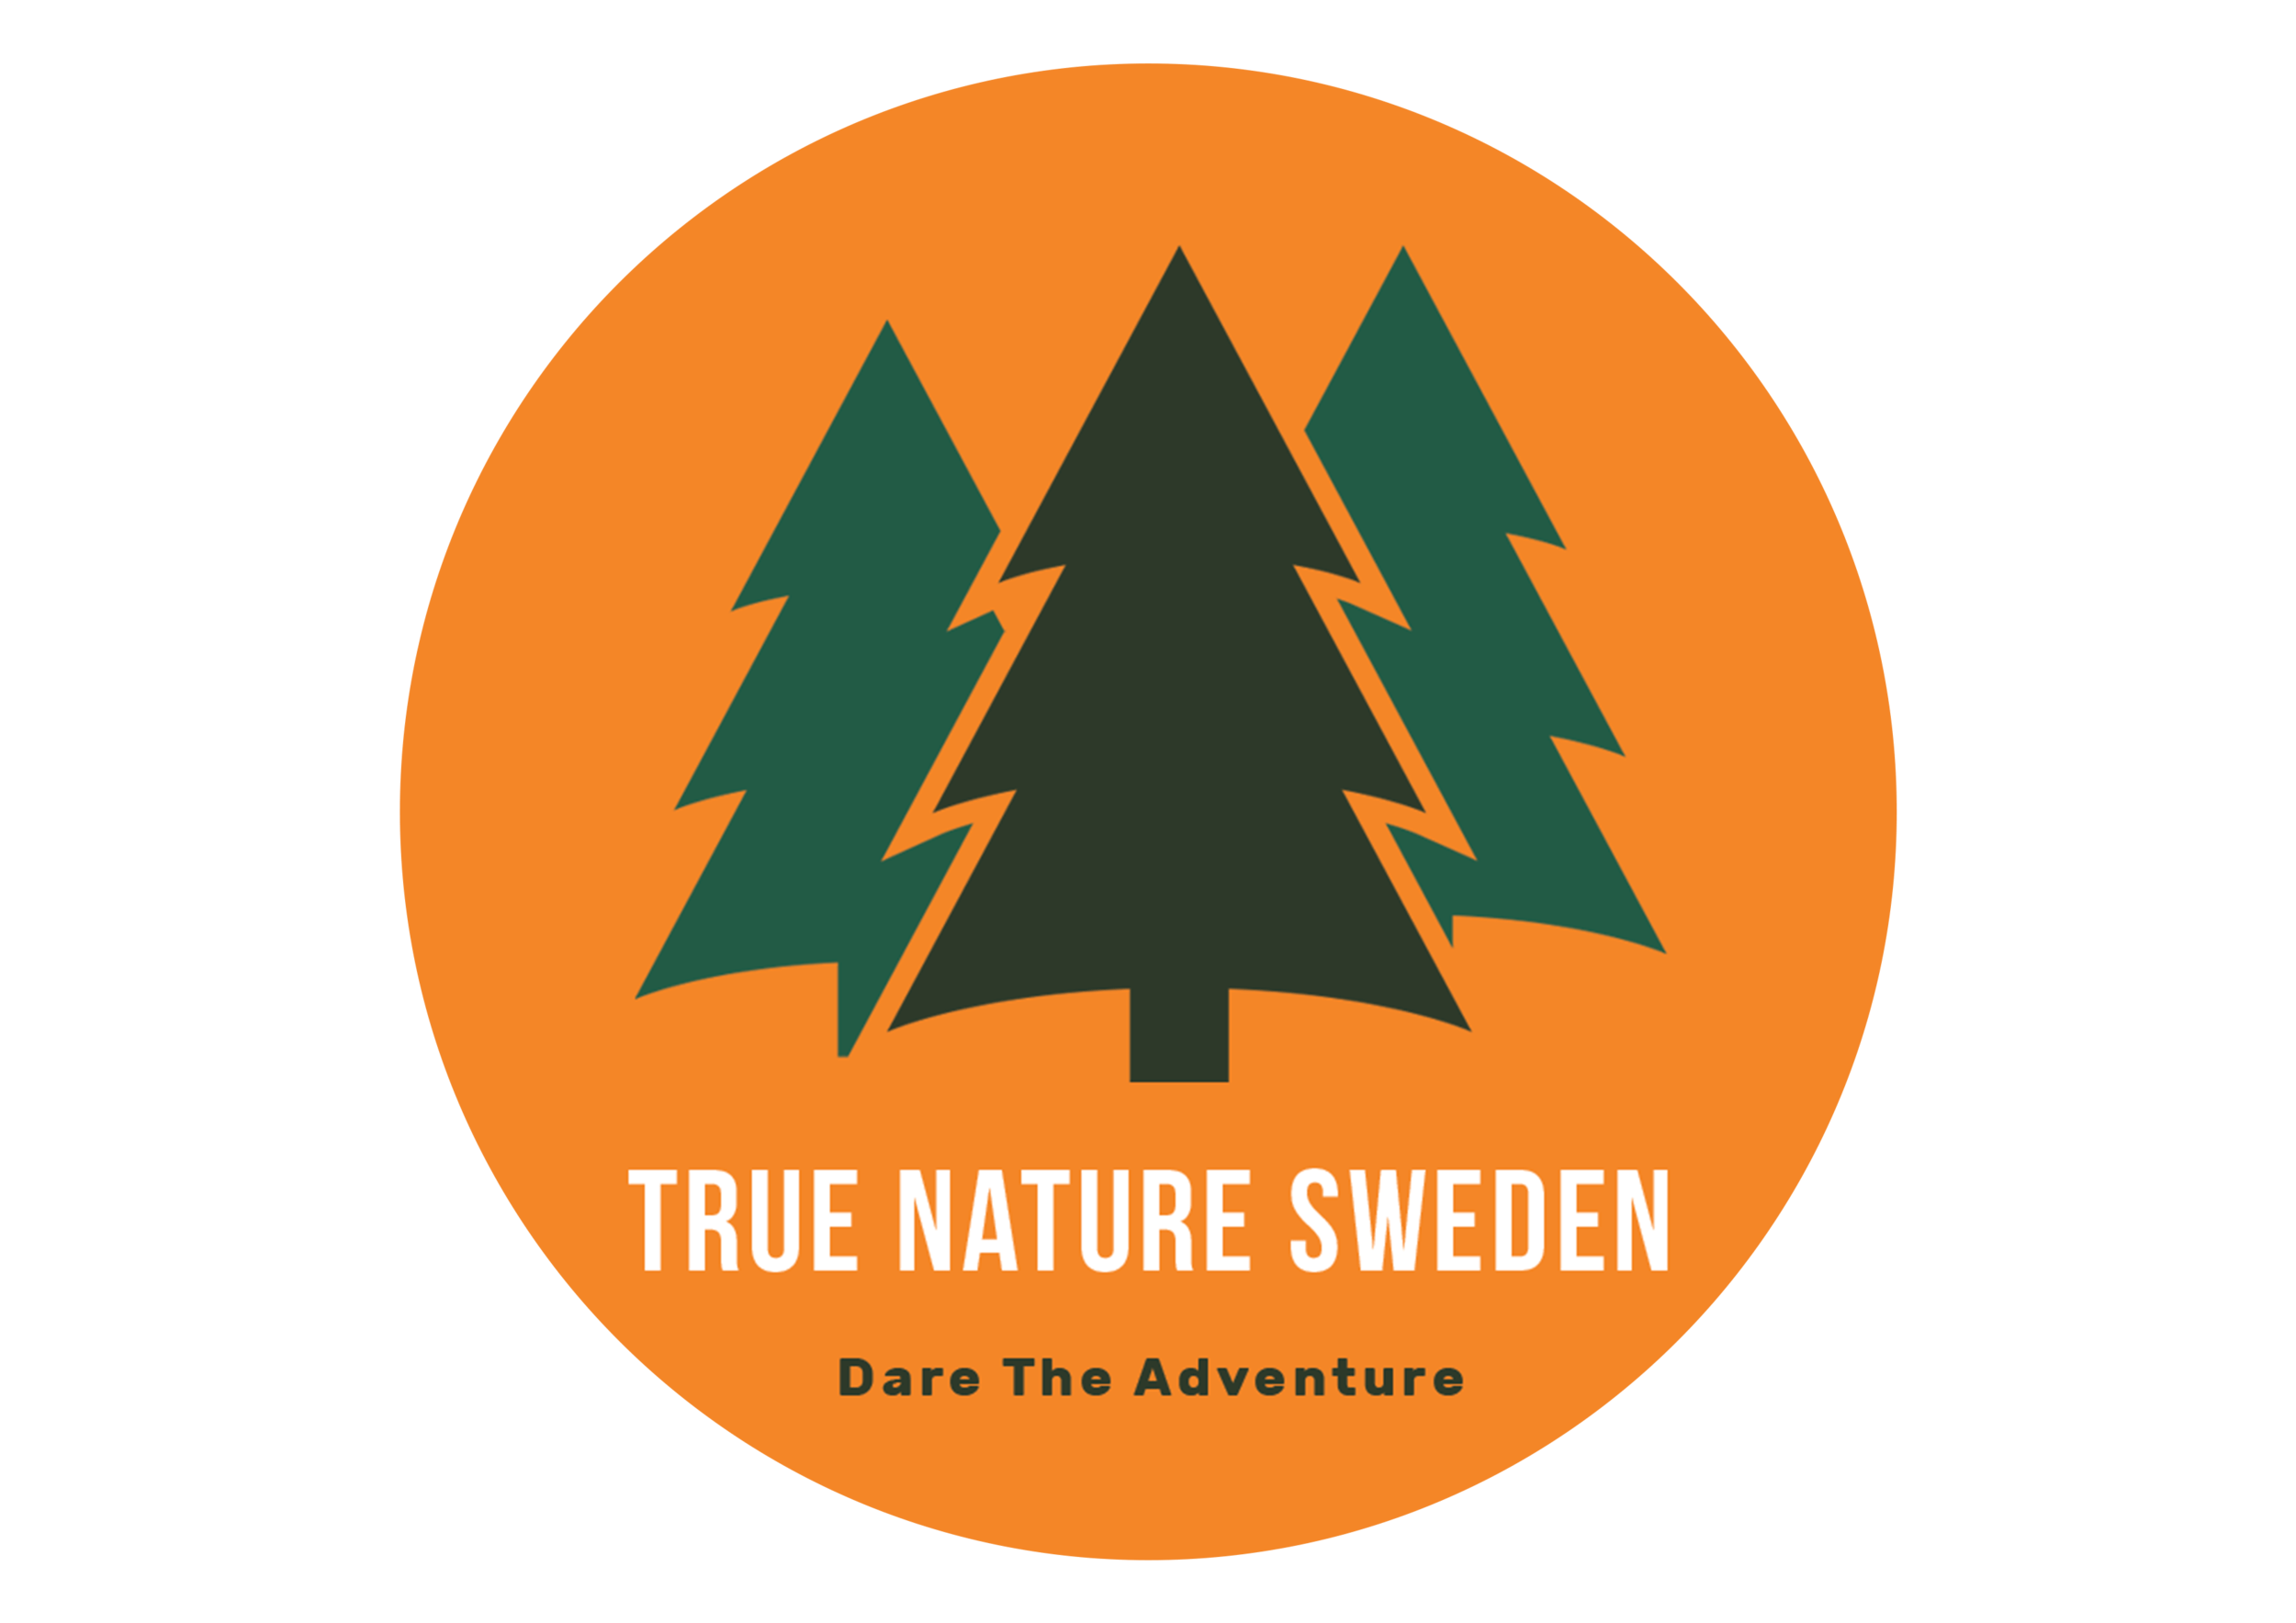 Tours Trip Swedish Nature Tours Guide And Trip To Sweden